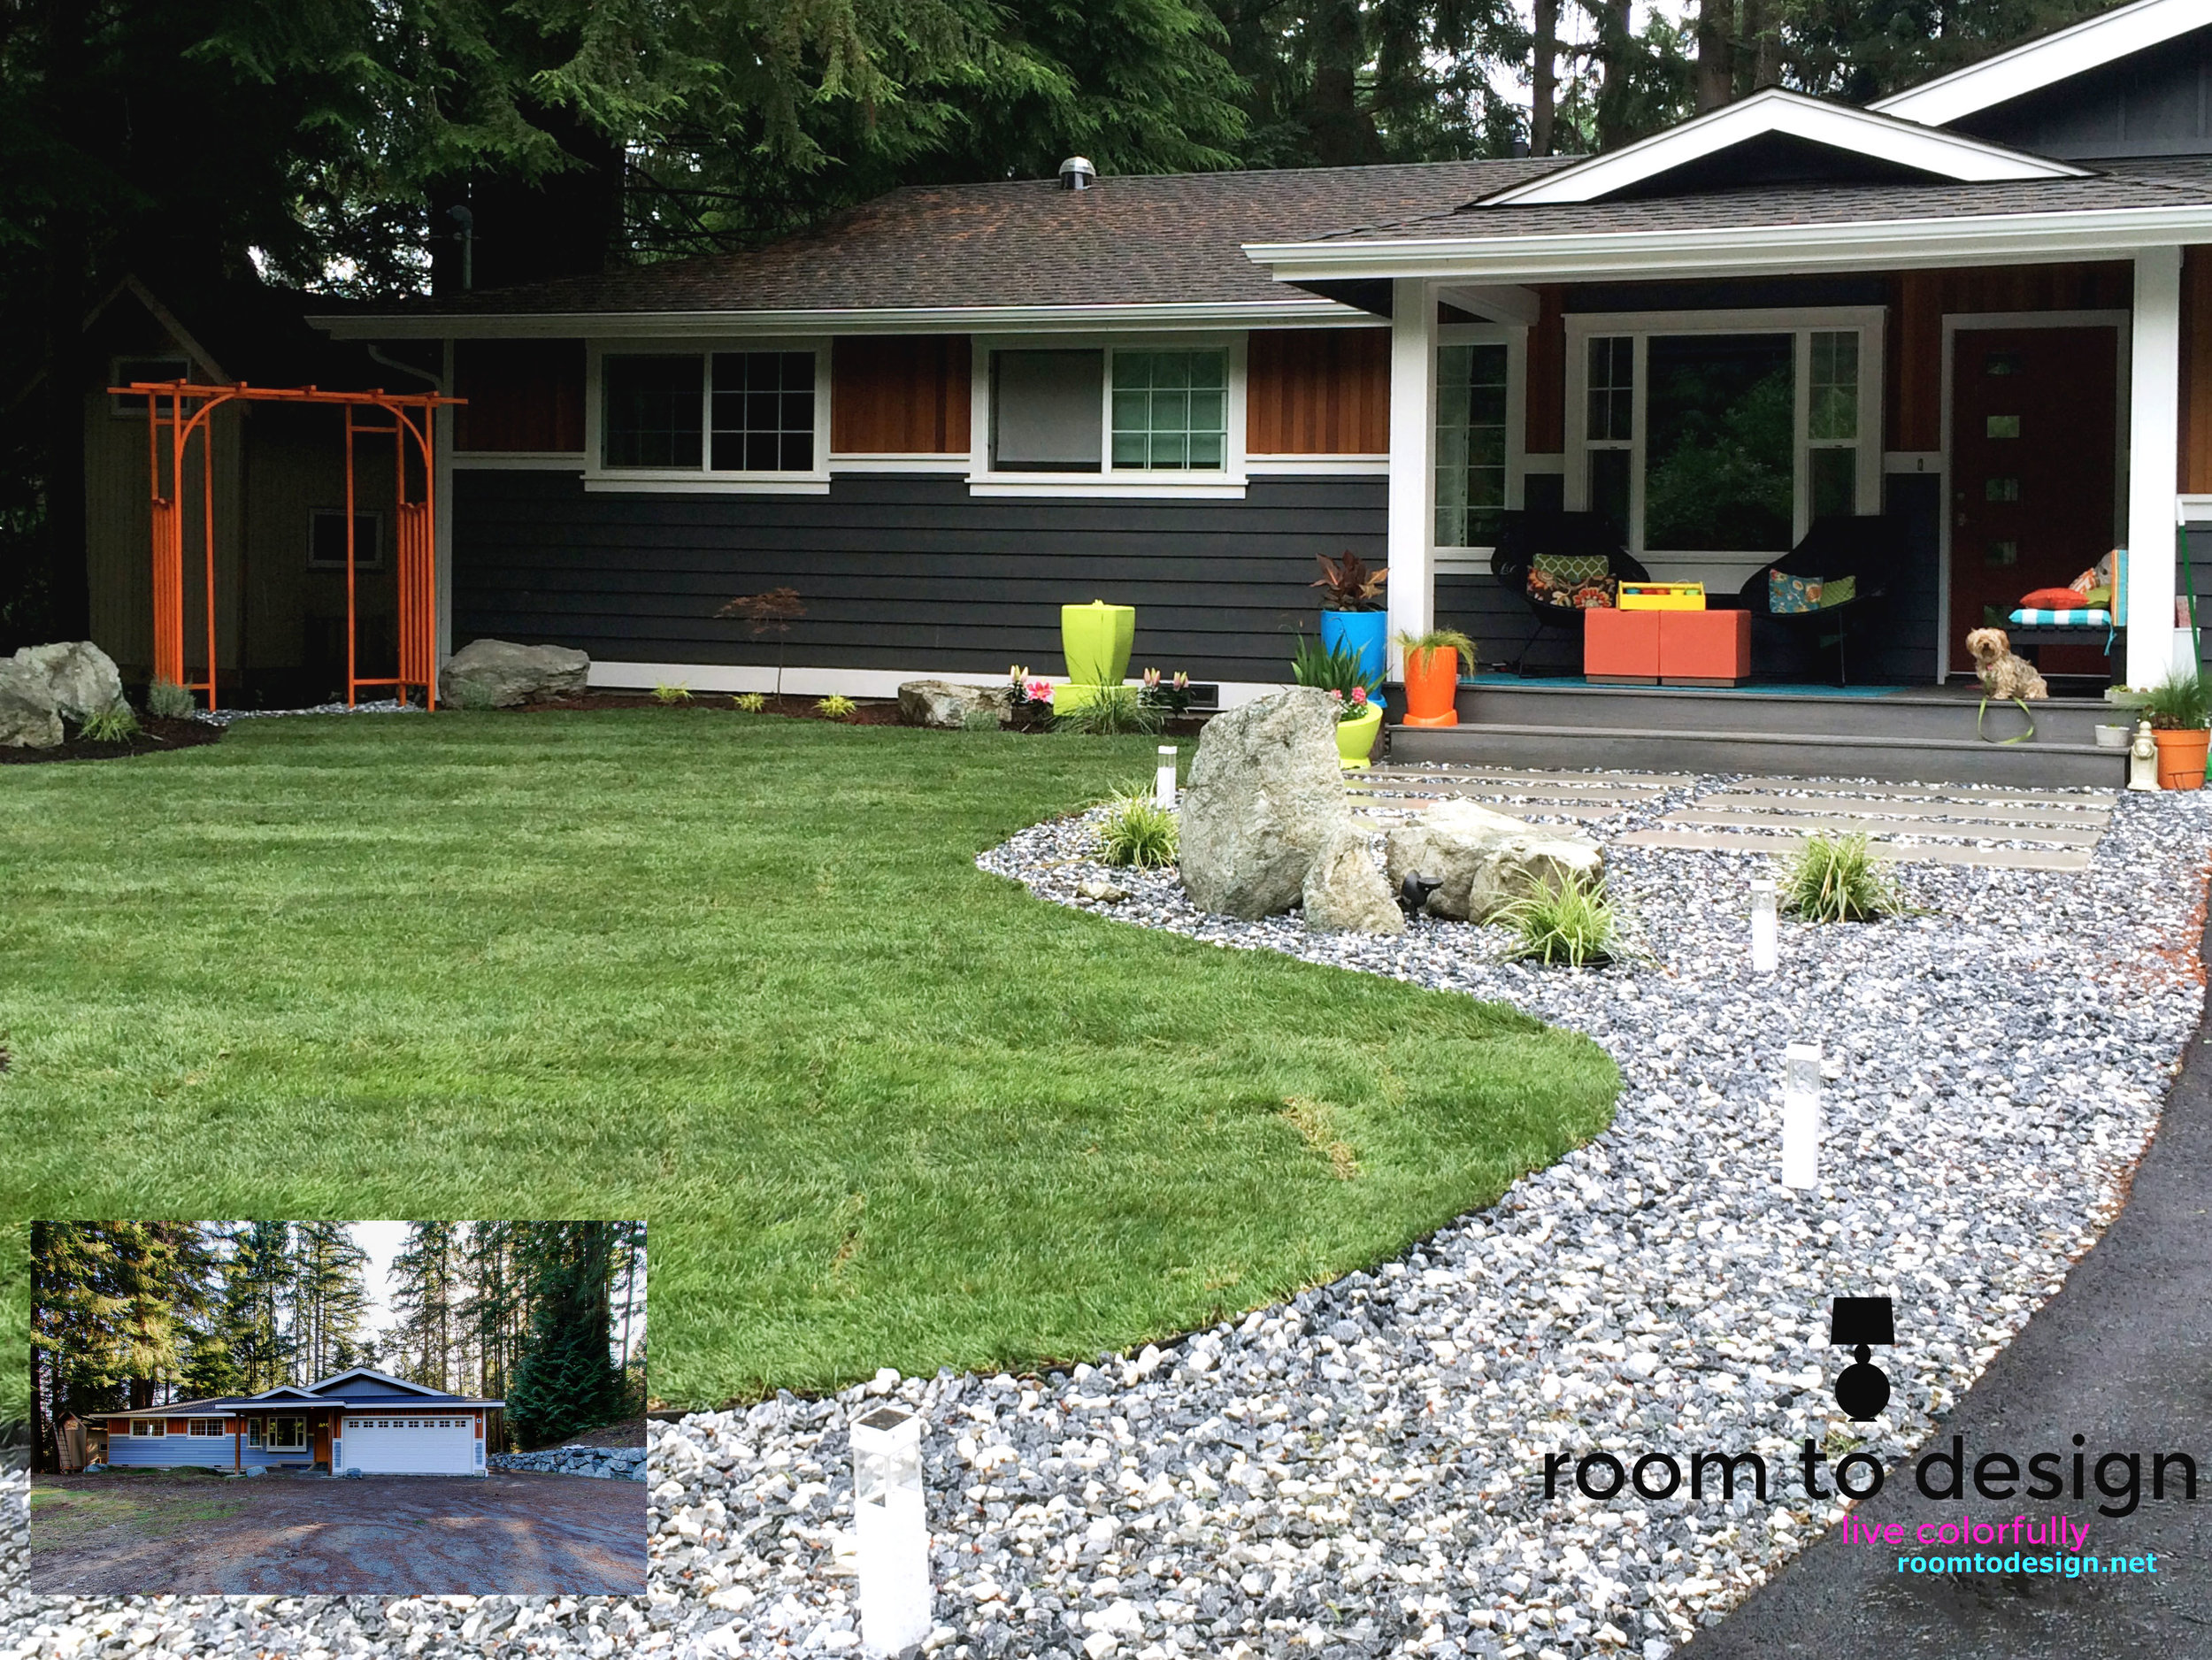 woodinville-ranch-remodel-room-to-design.jpg